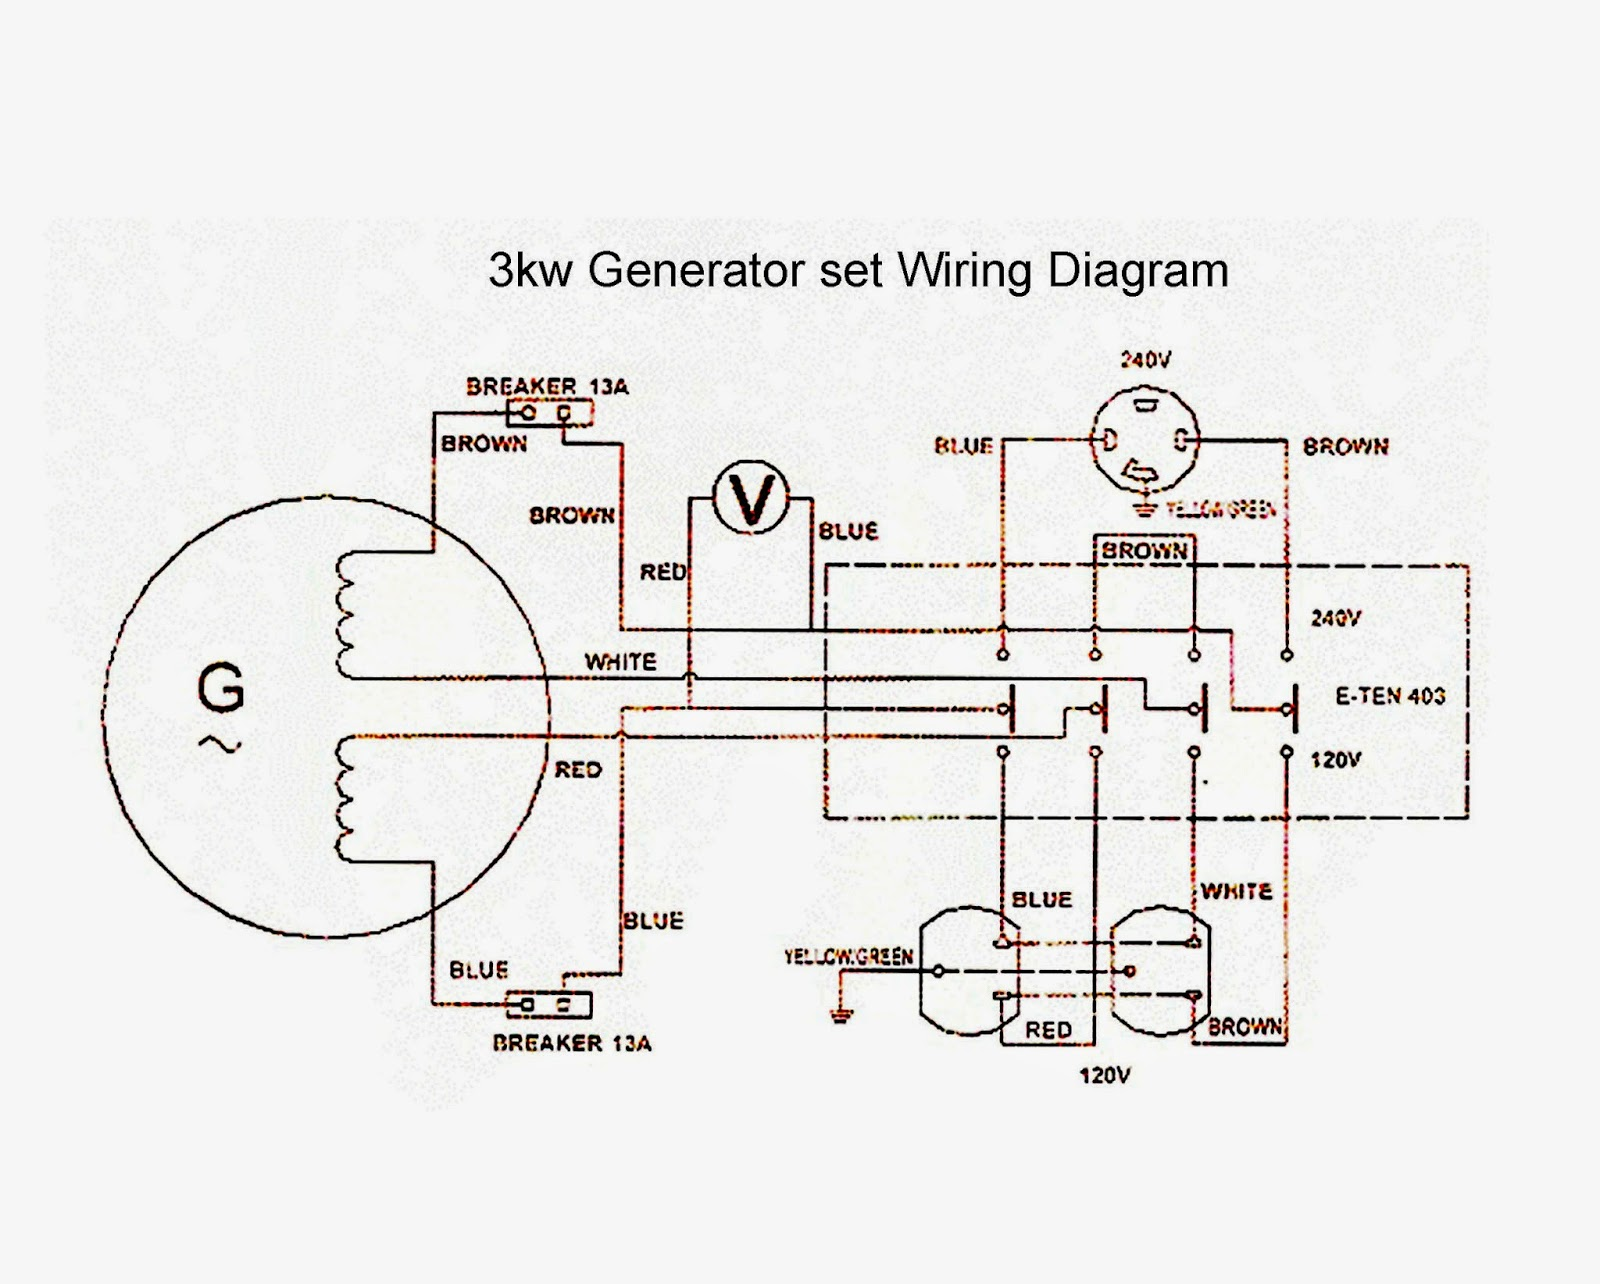 portable solar generators wiring diagram with Generator Control Panel Wiring Diagram on Off Grid Energy System 4kw likewise 22891 besides View All besides CTEKD250S as well Activebatteriesandsolar.